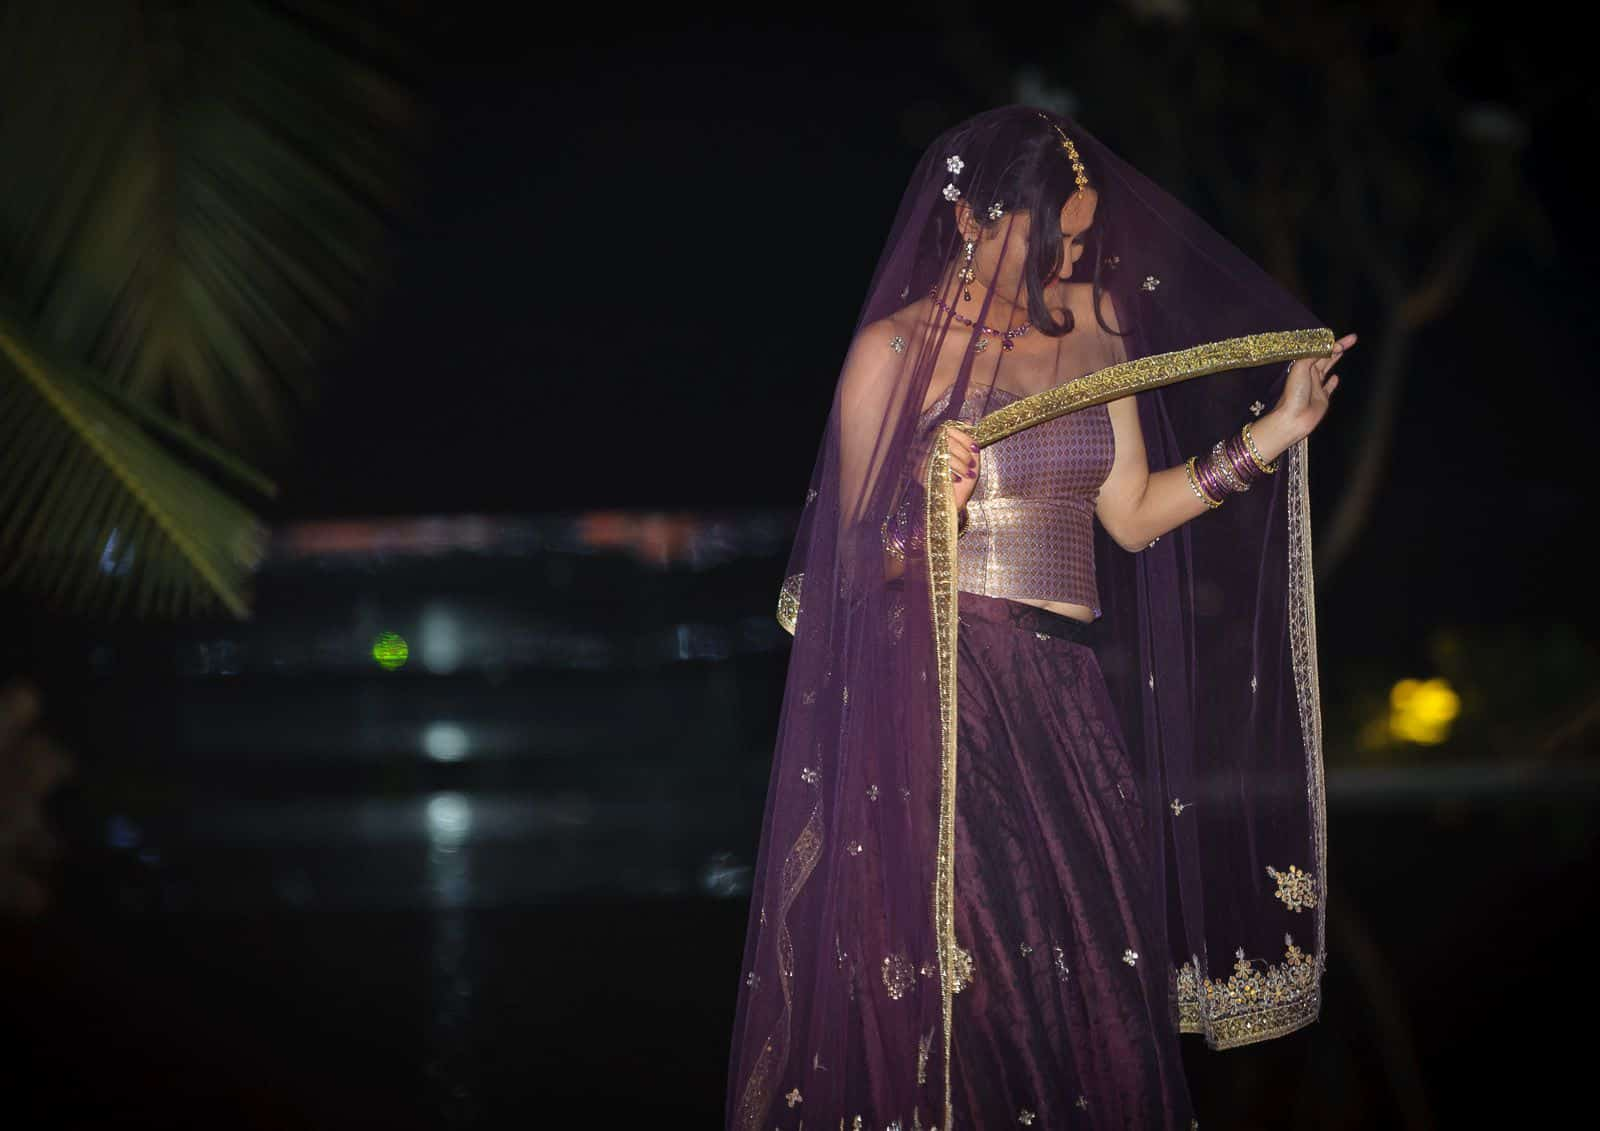 anoop-wedding-photographer-sangeet-ceremony-bride-purple-lehenga